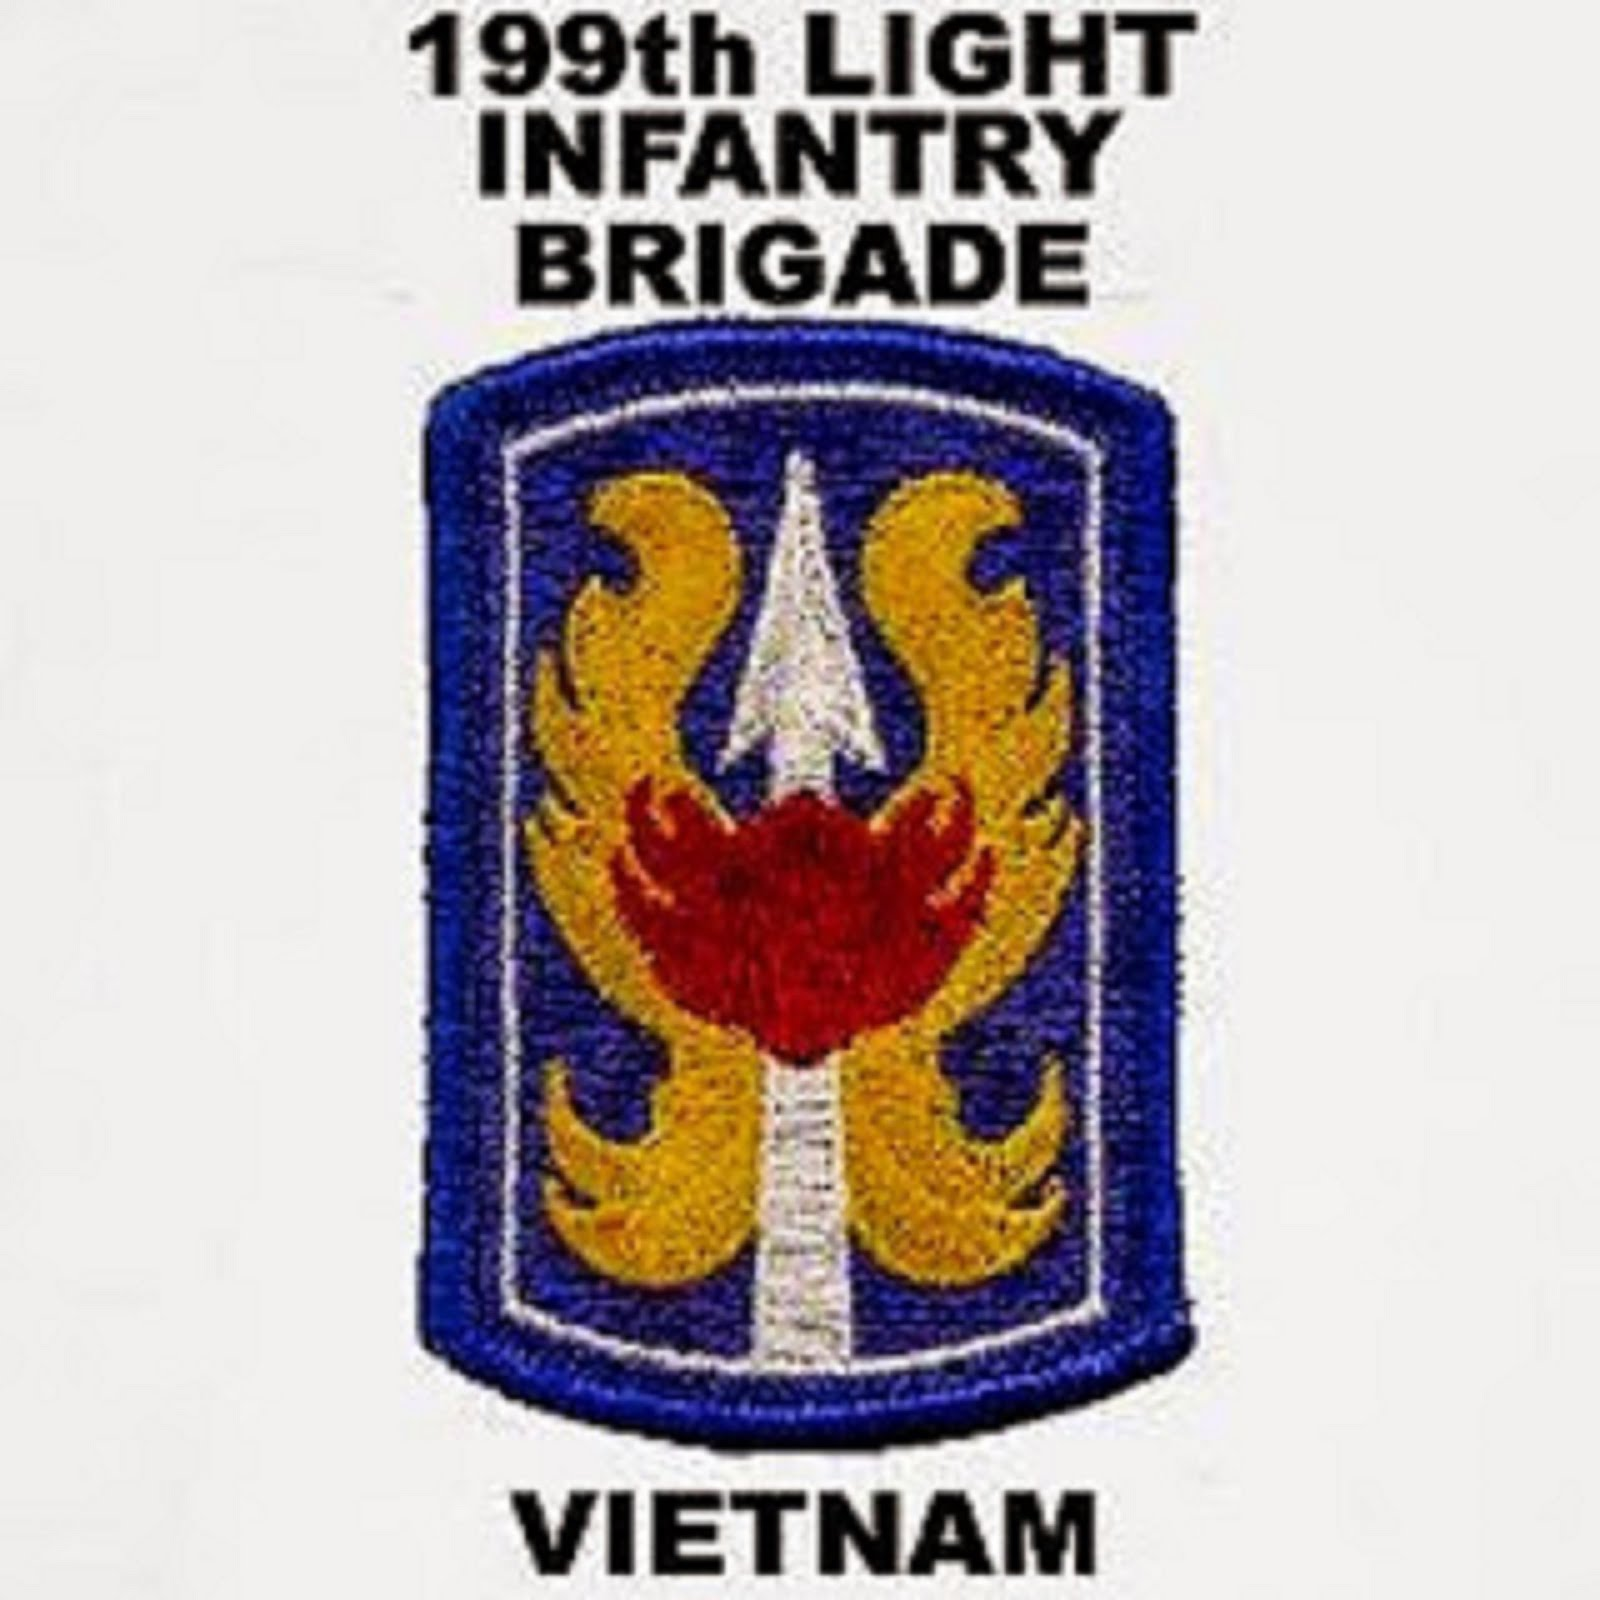 199th LIGHT INFANTRY BRIGADE - VIETNAM